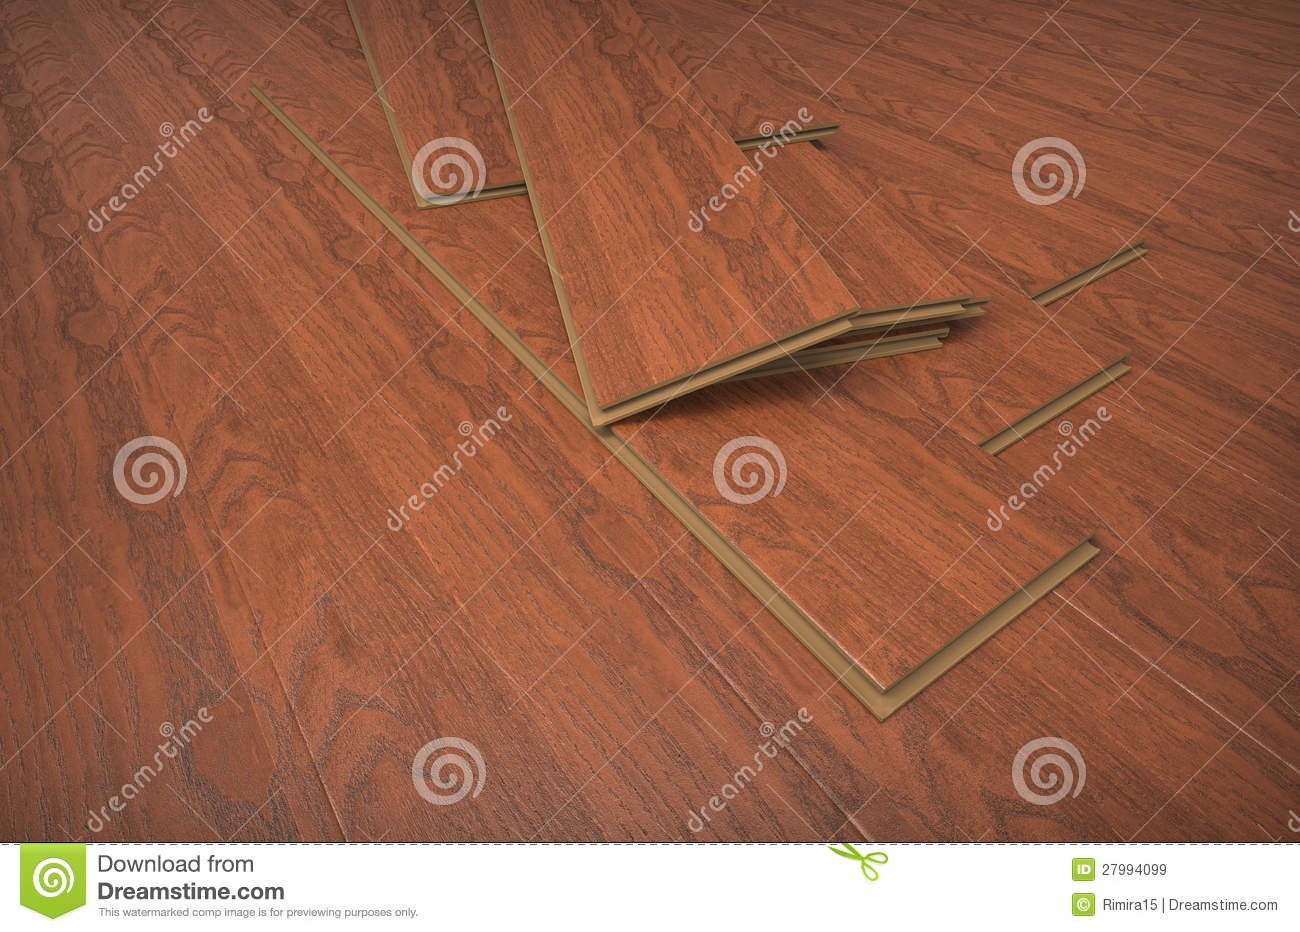 laminate flooring royalty free stock images image 27994099